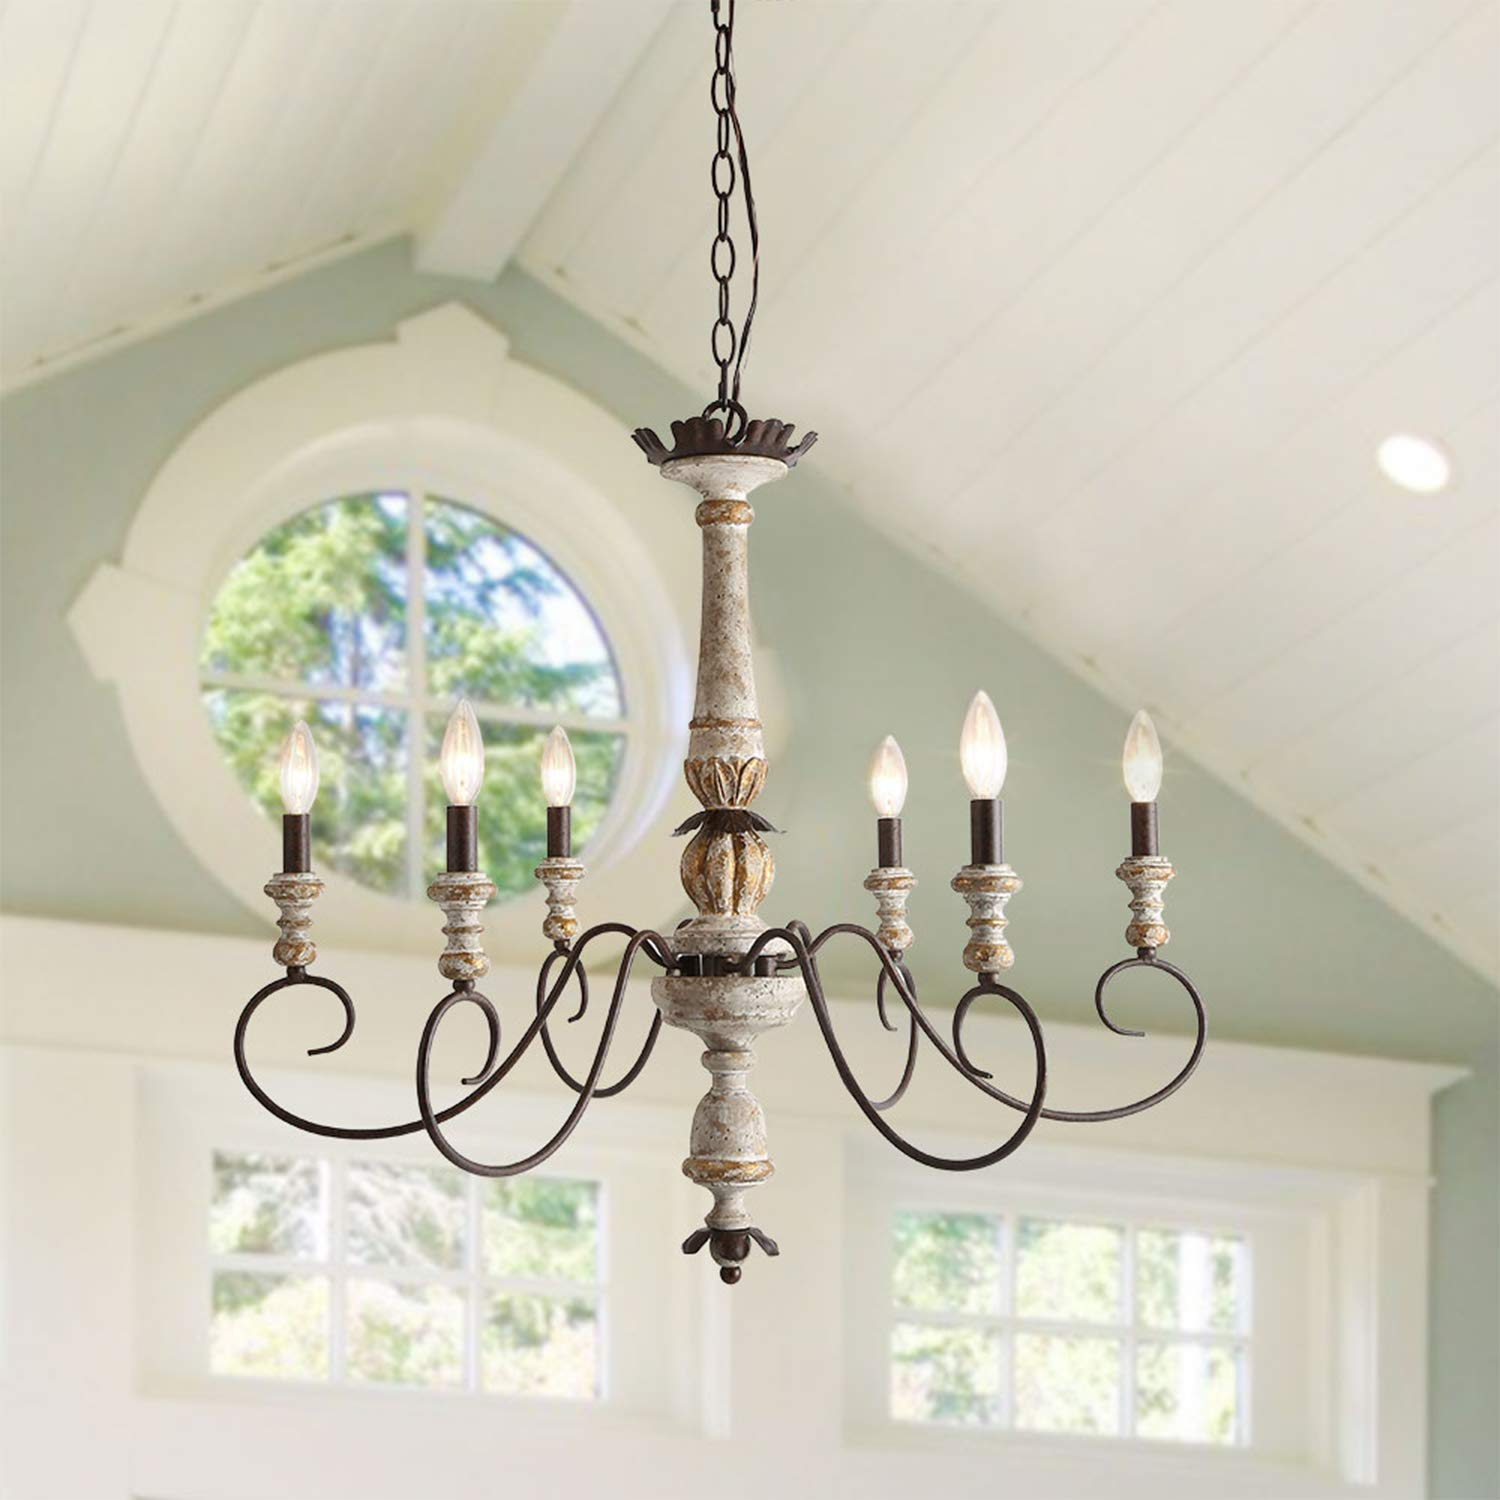 """LALUZ 6 Lights French Country Shabby Chic Chandelier with Cloud Arms in Distressed Wood and Rusty Metal Finish, 31.1"""" Large Living Room Pendant Light Fixture, A03482"""